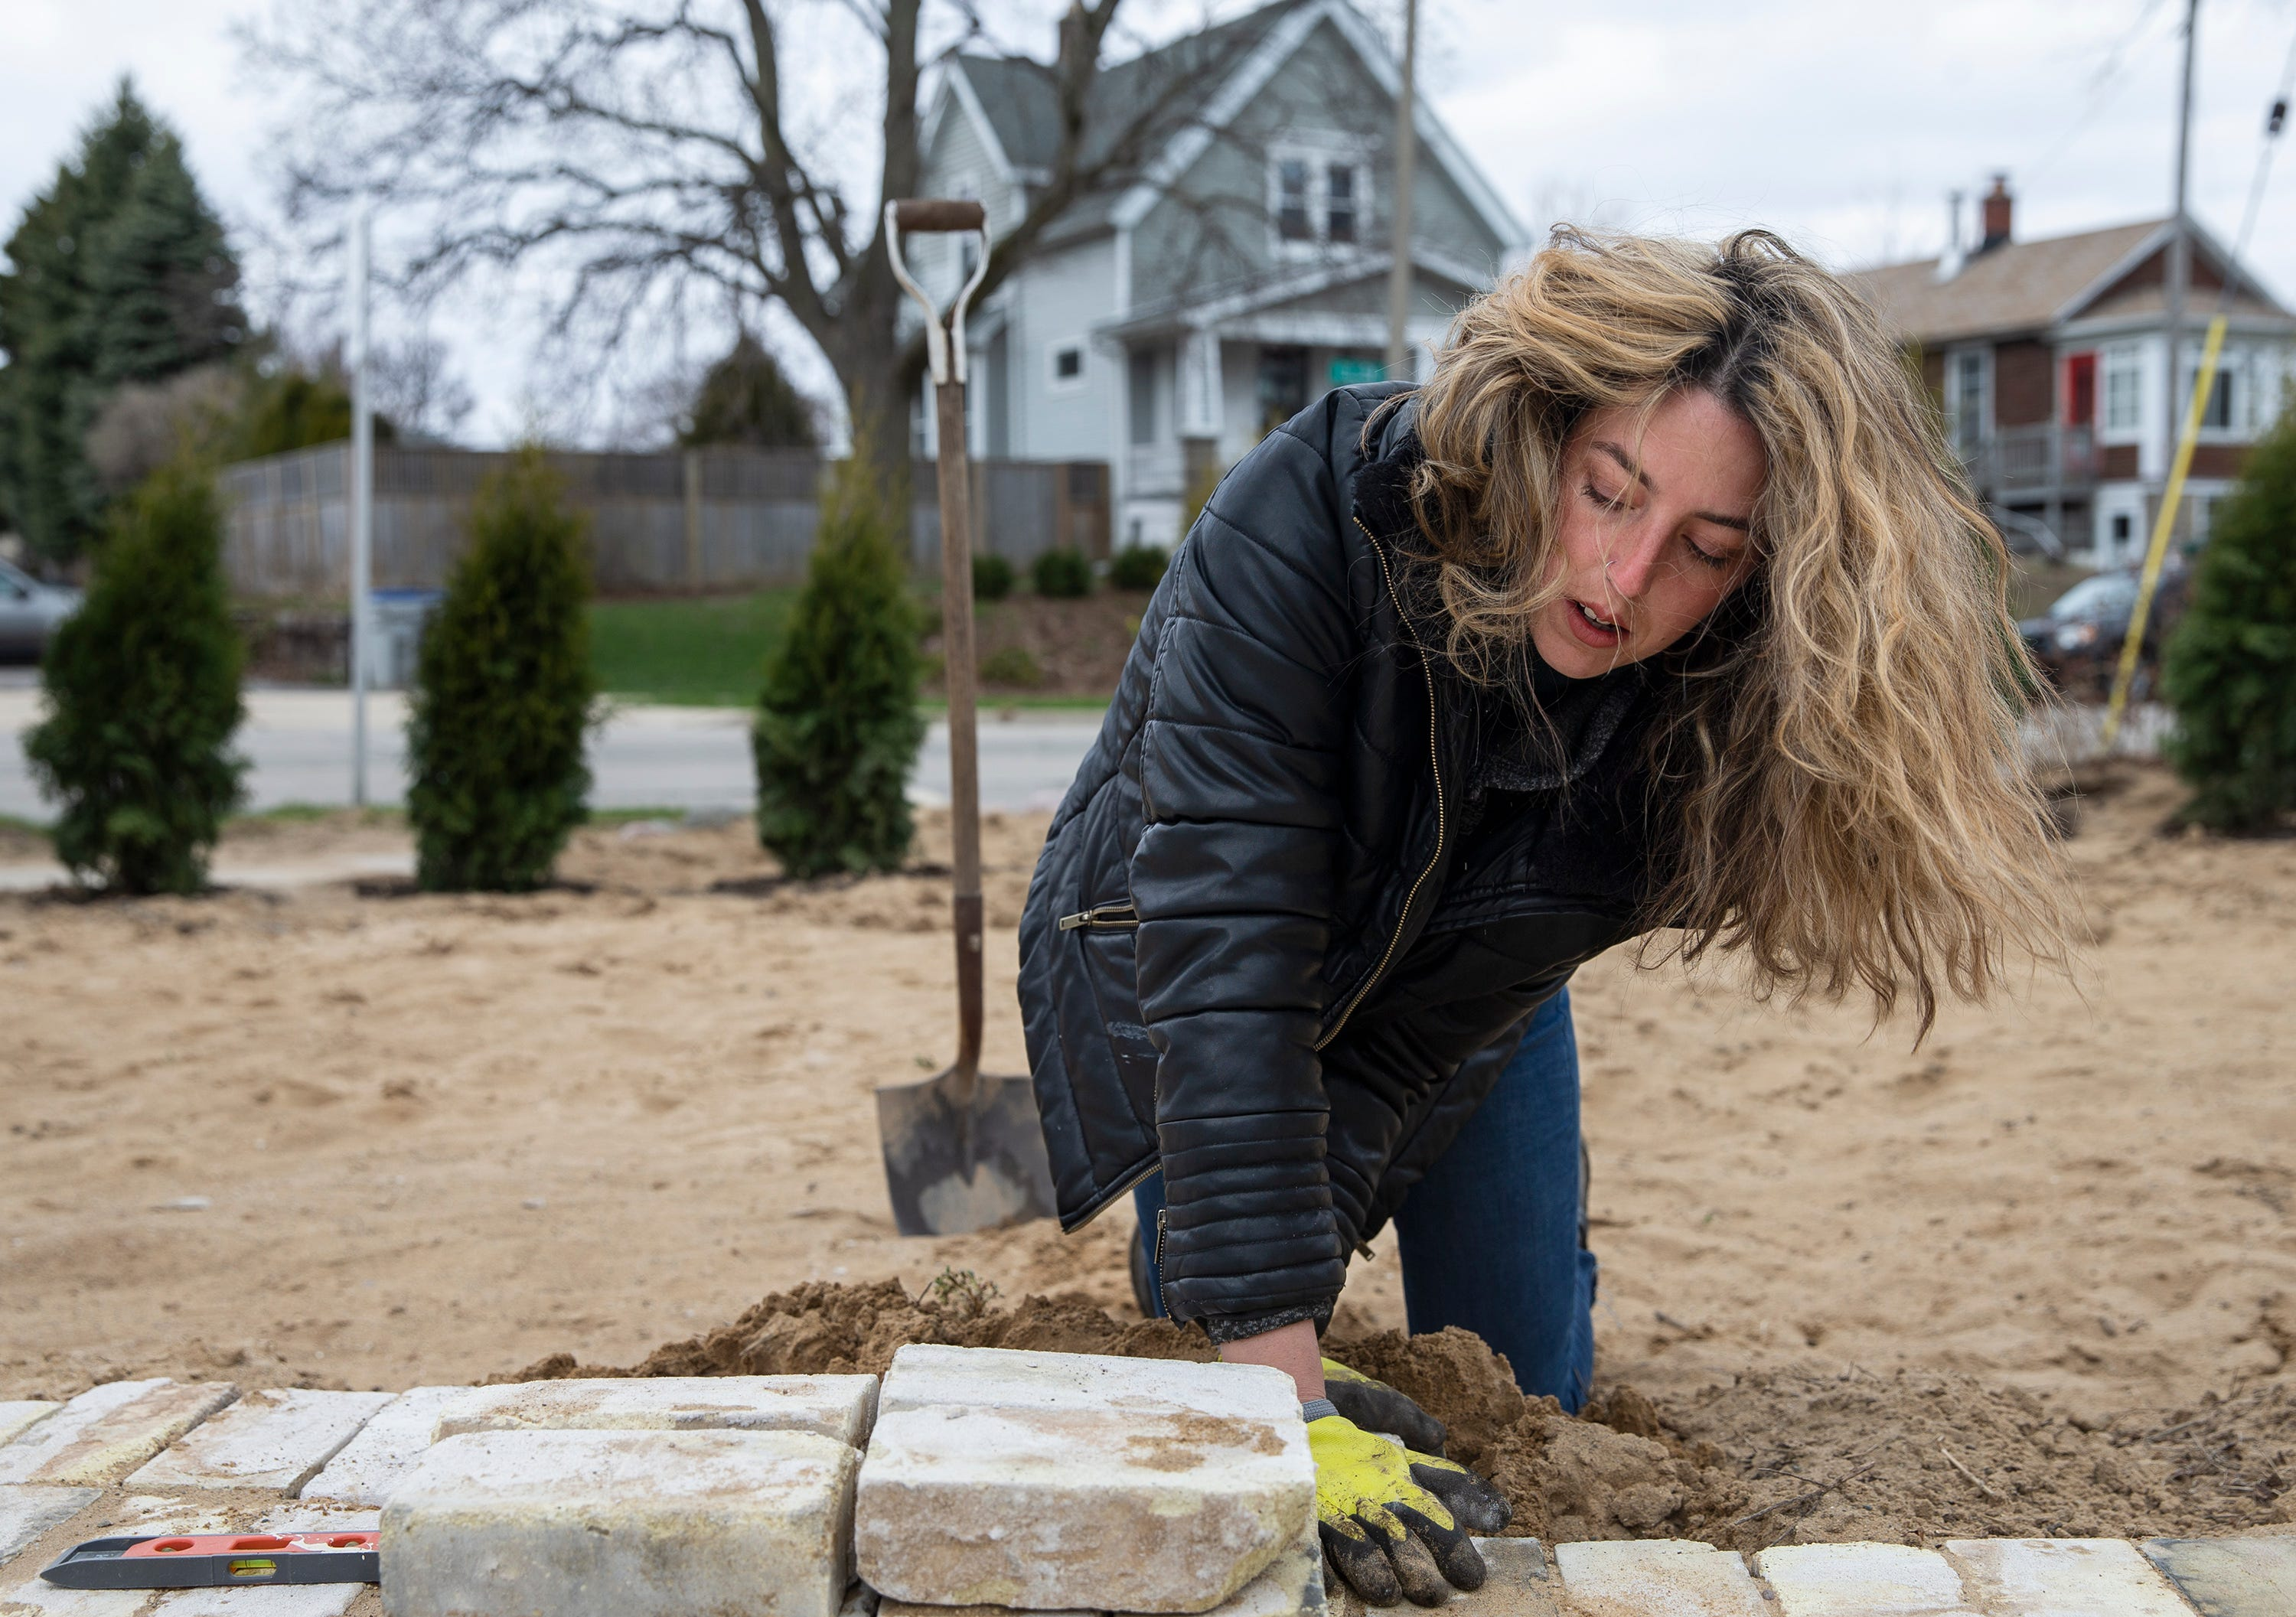 Allison Meinhardt places pavers in the backyard of White House Tavern. The back area will be a patio when it's done.